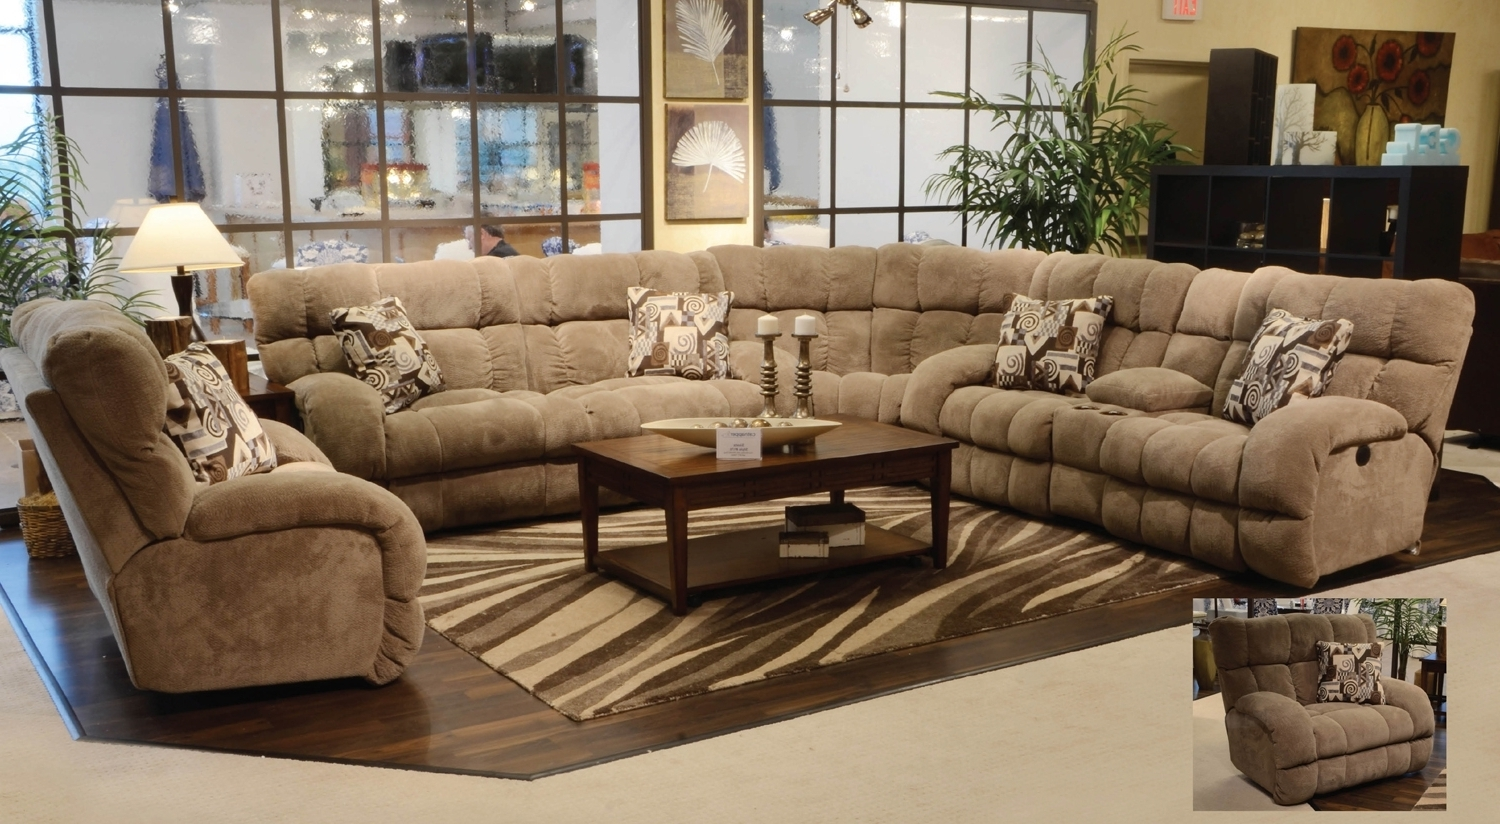 Most Current Long Sectional Sofas With Chaise Intended For Sofa : Winsome Large Sectional Sofa Sofas With Chaise Fancy As (View 12 of 15)